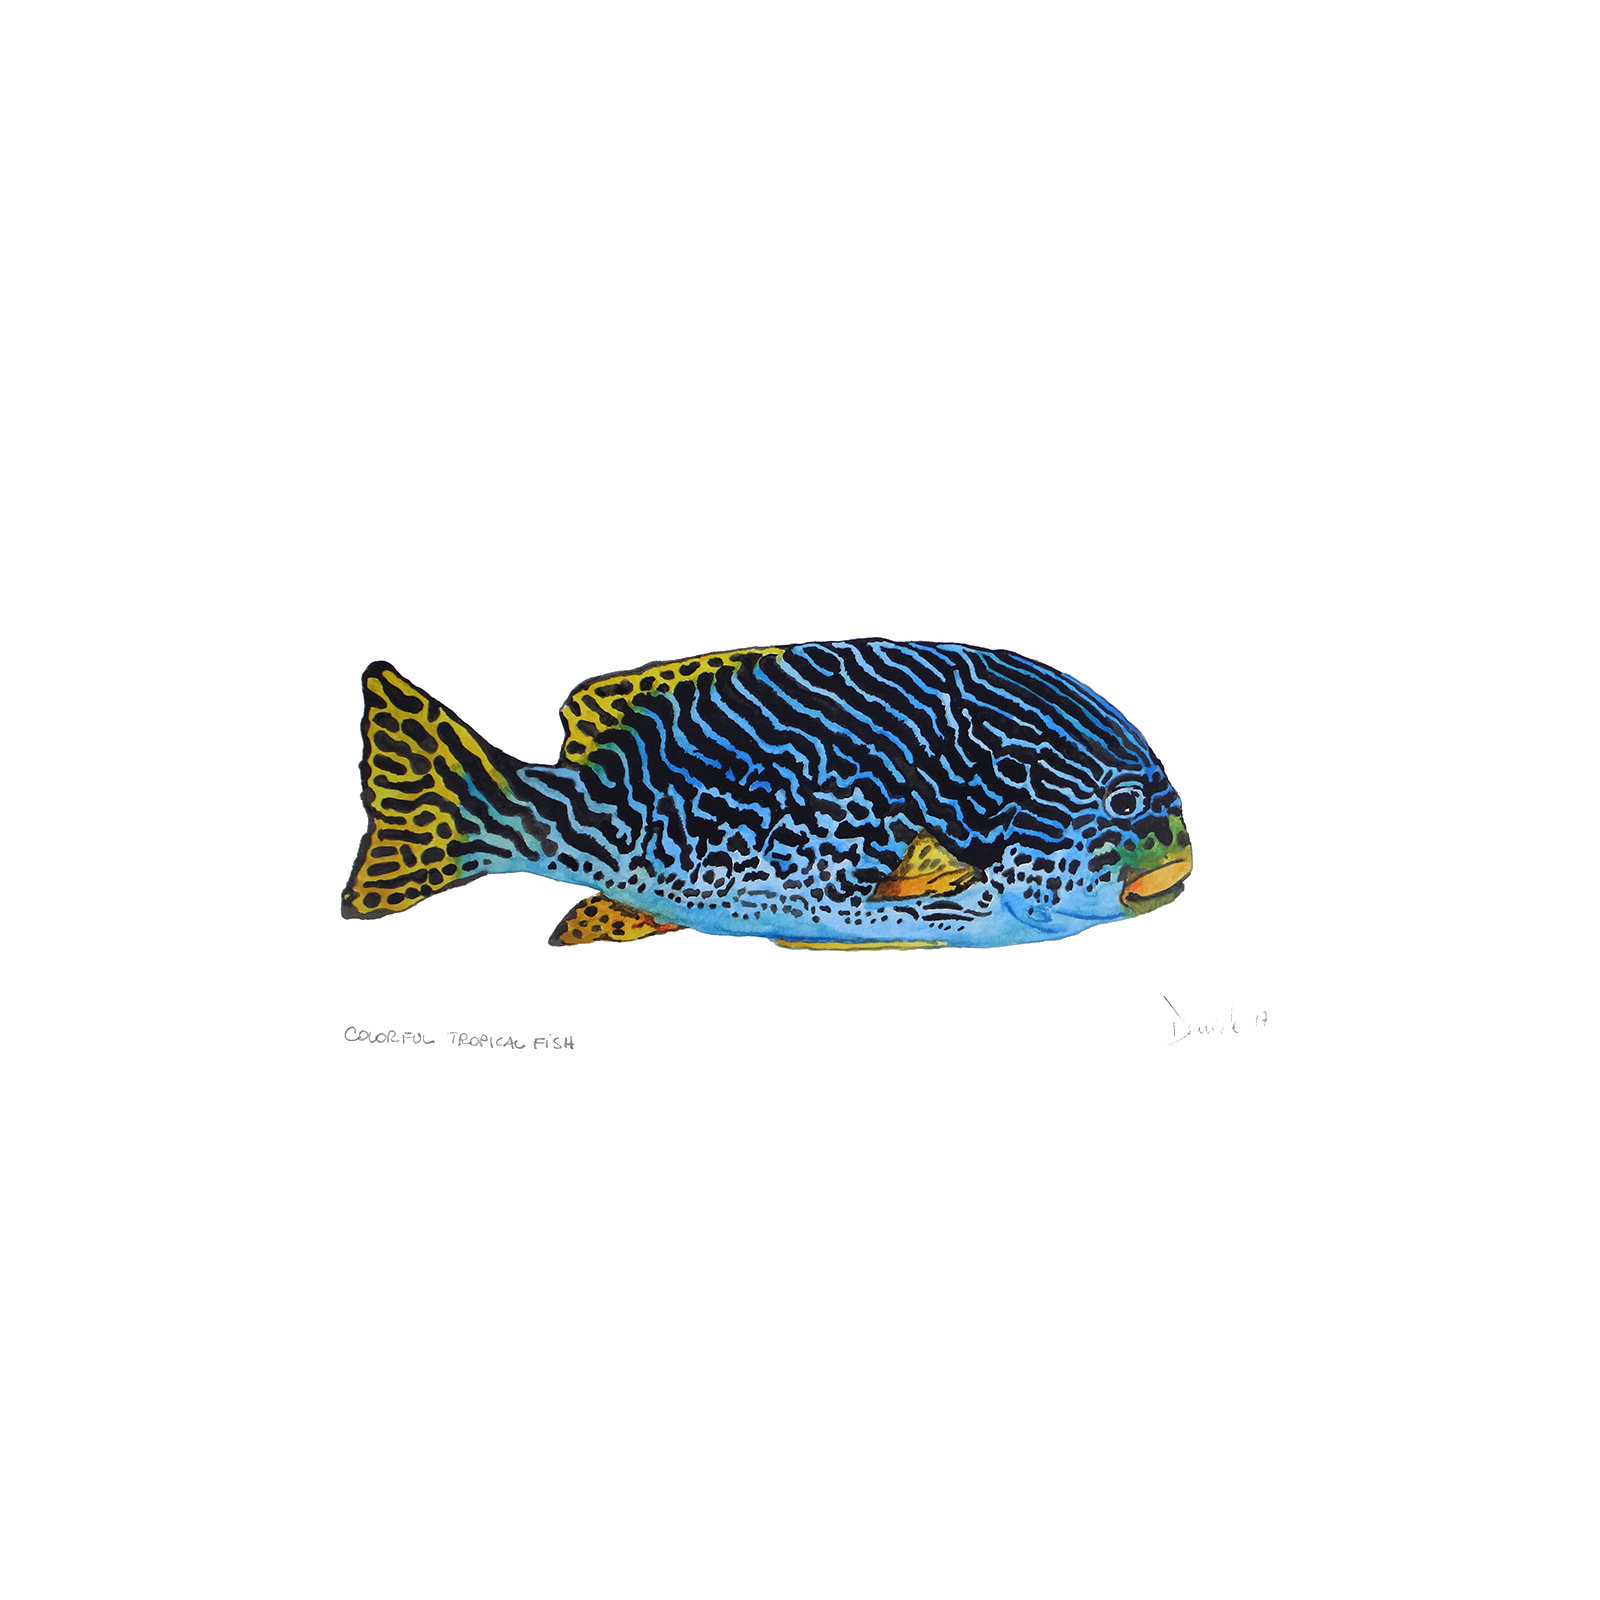 Colorful tropical fish, 2017